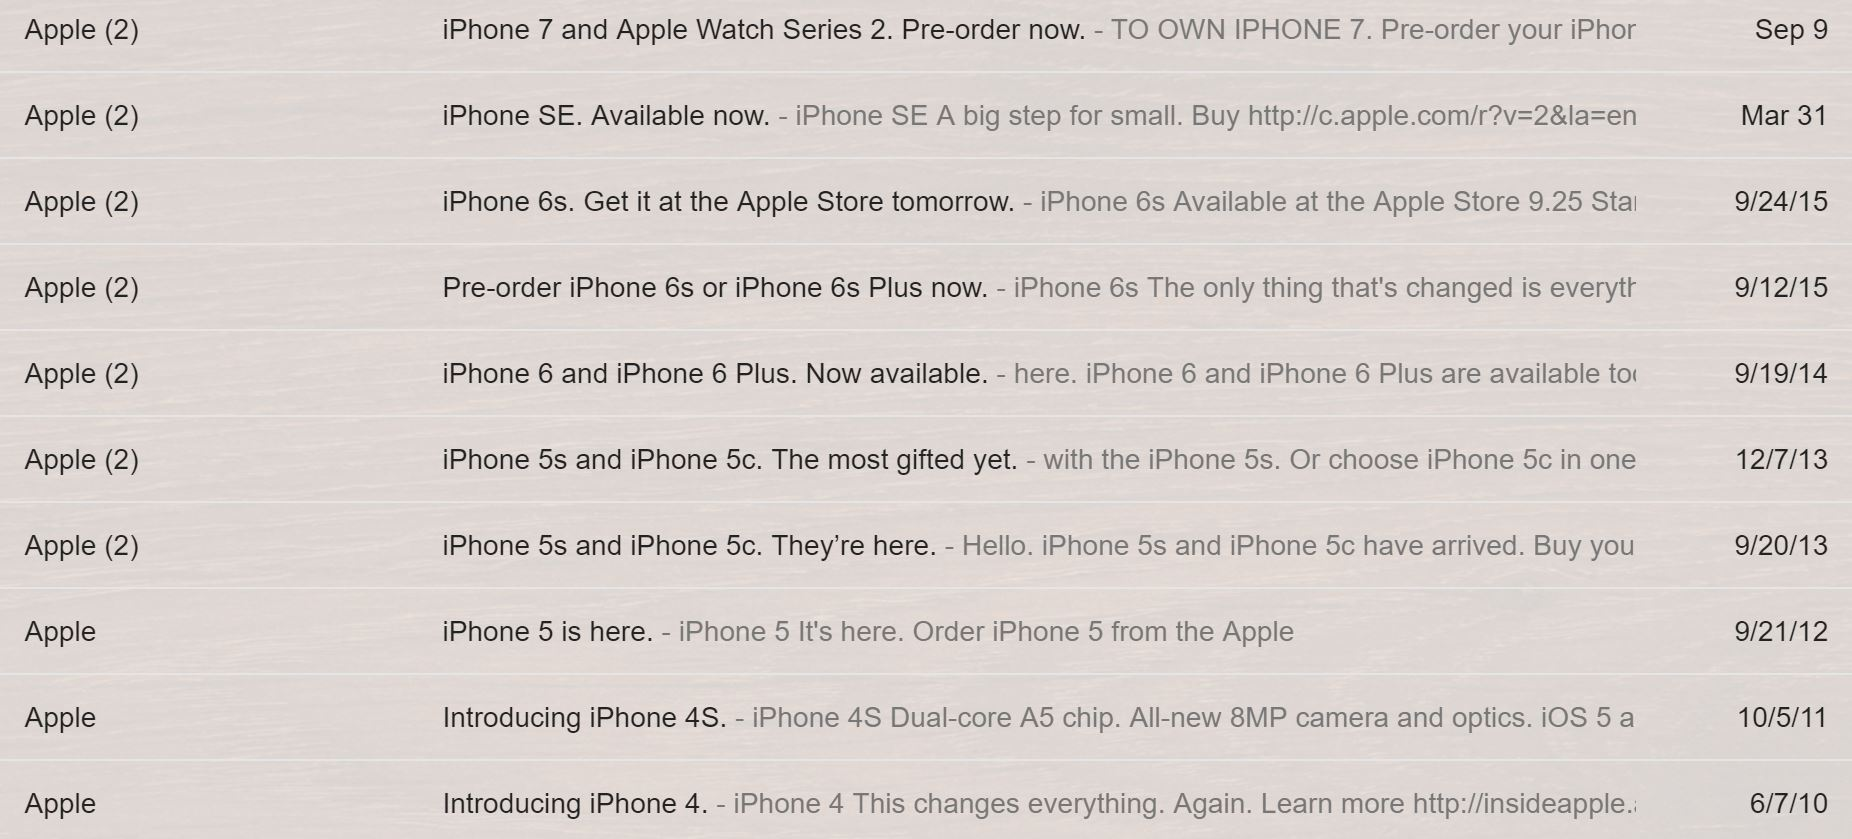 Email subject lines from Apple's iPhone Announcements, 2009 through 2016